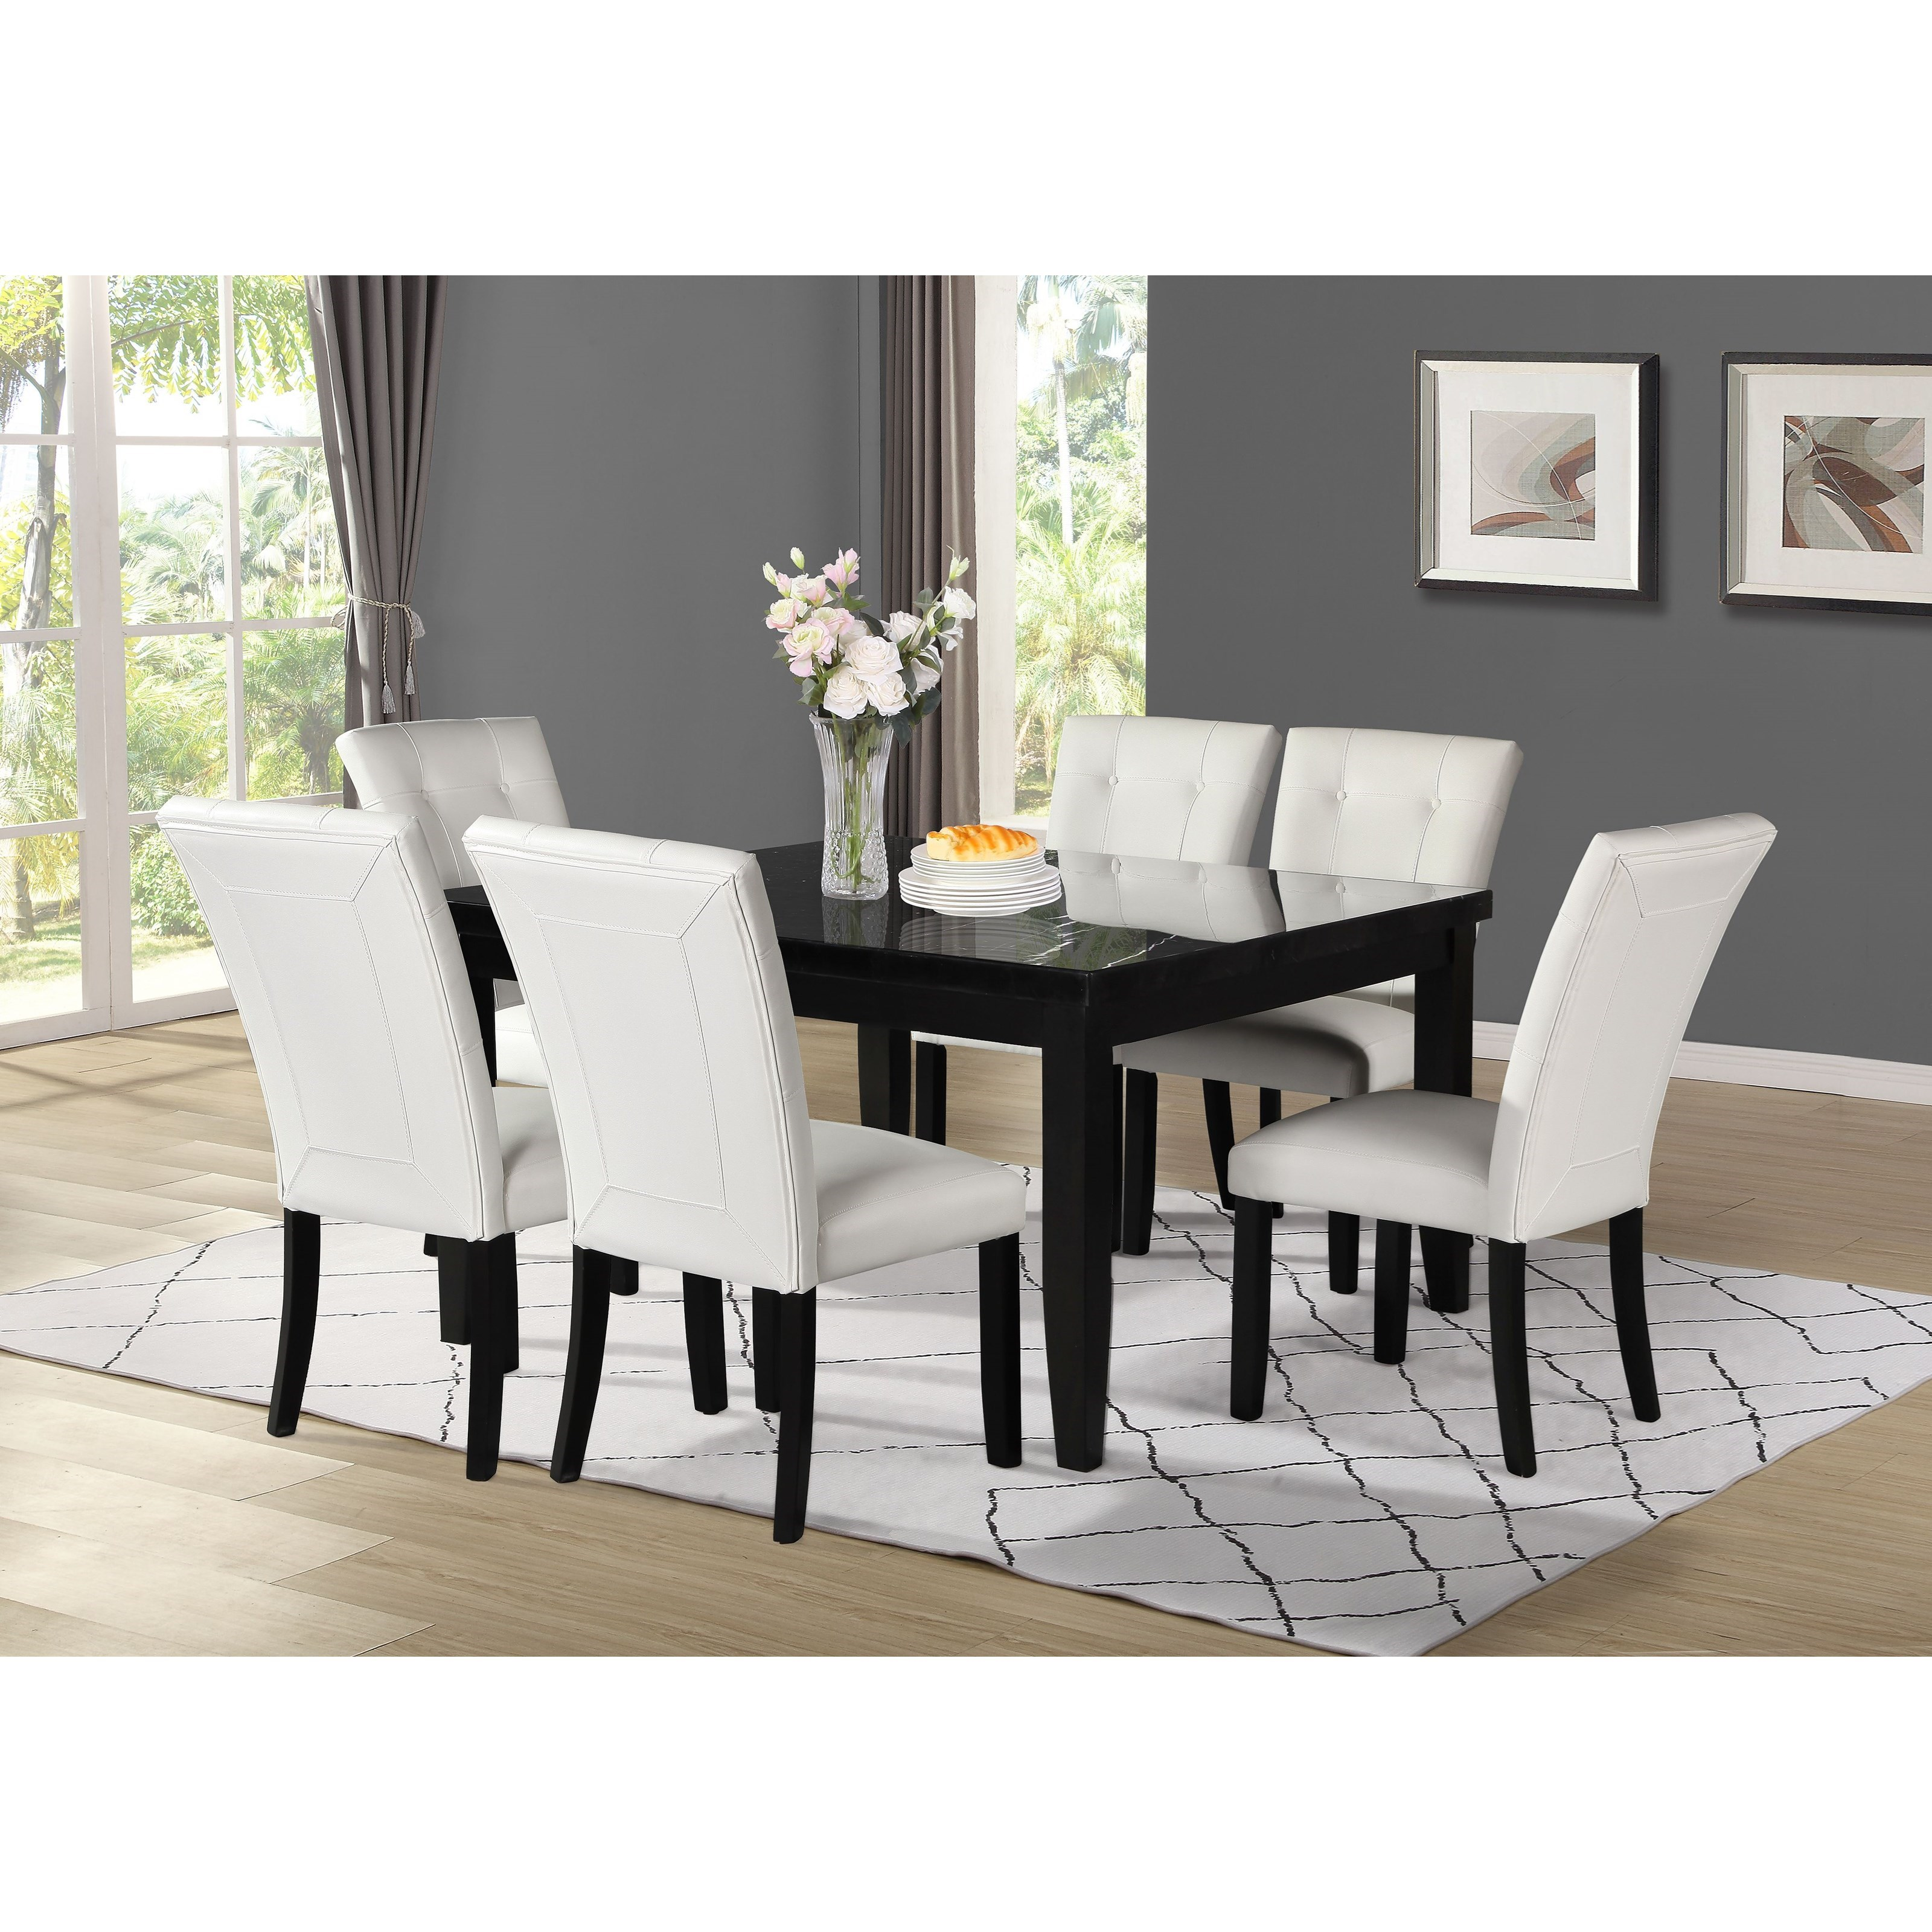 7-Piece Square Table and Chair Set